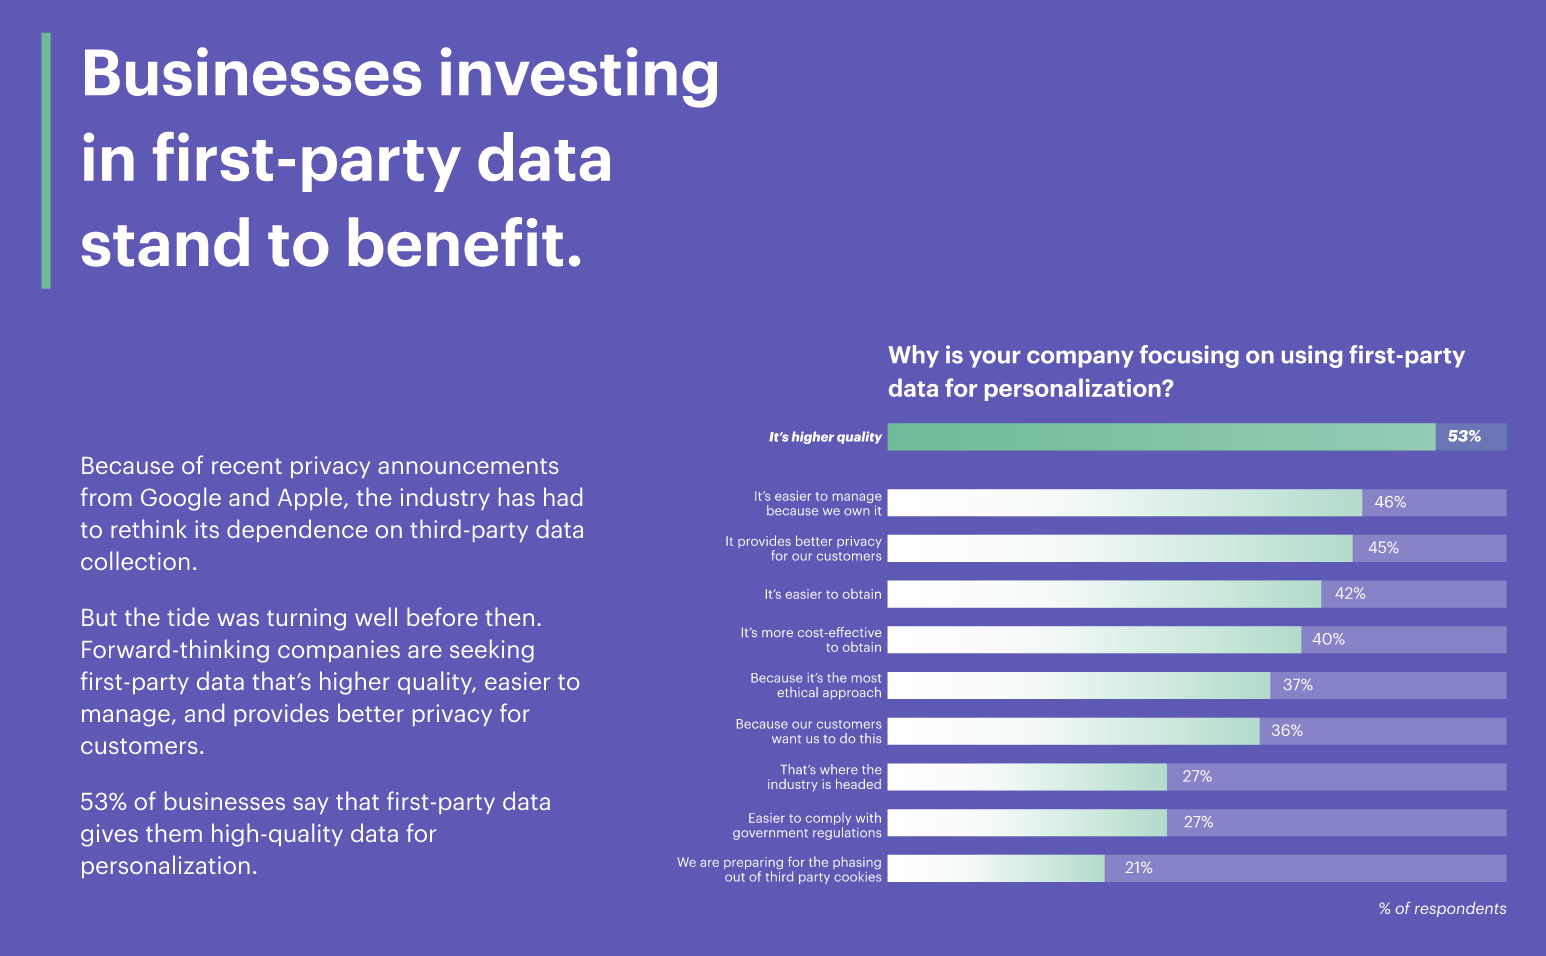 Businesses investing in first-party data stand to benefit